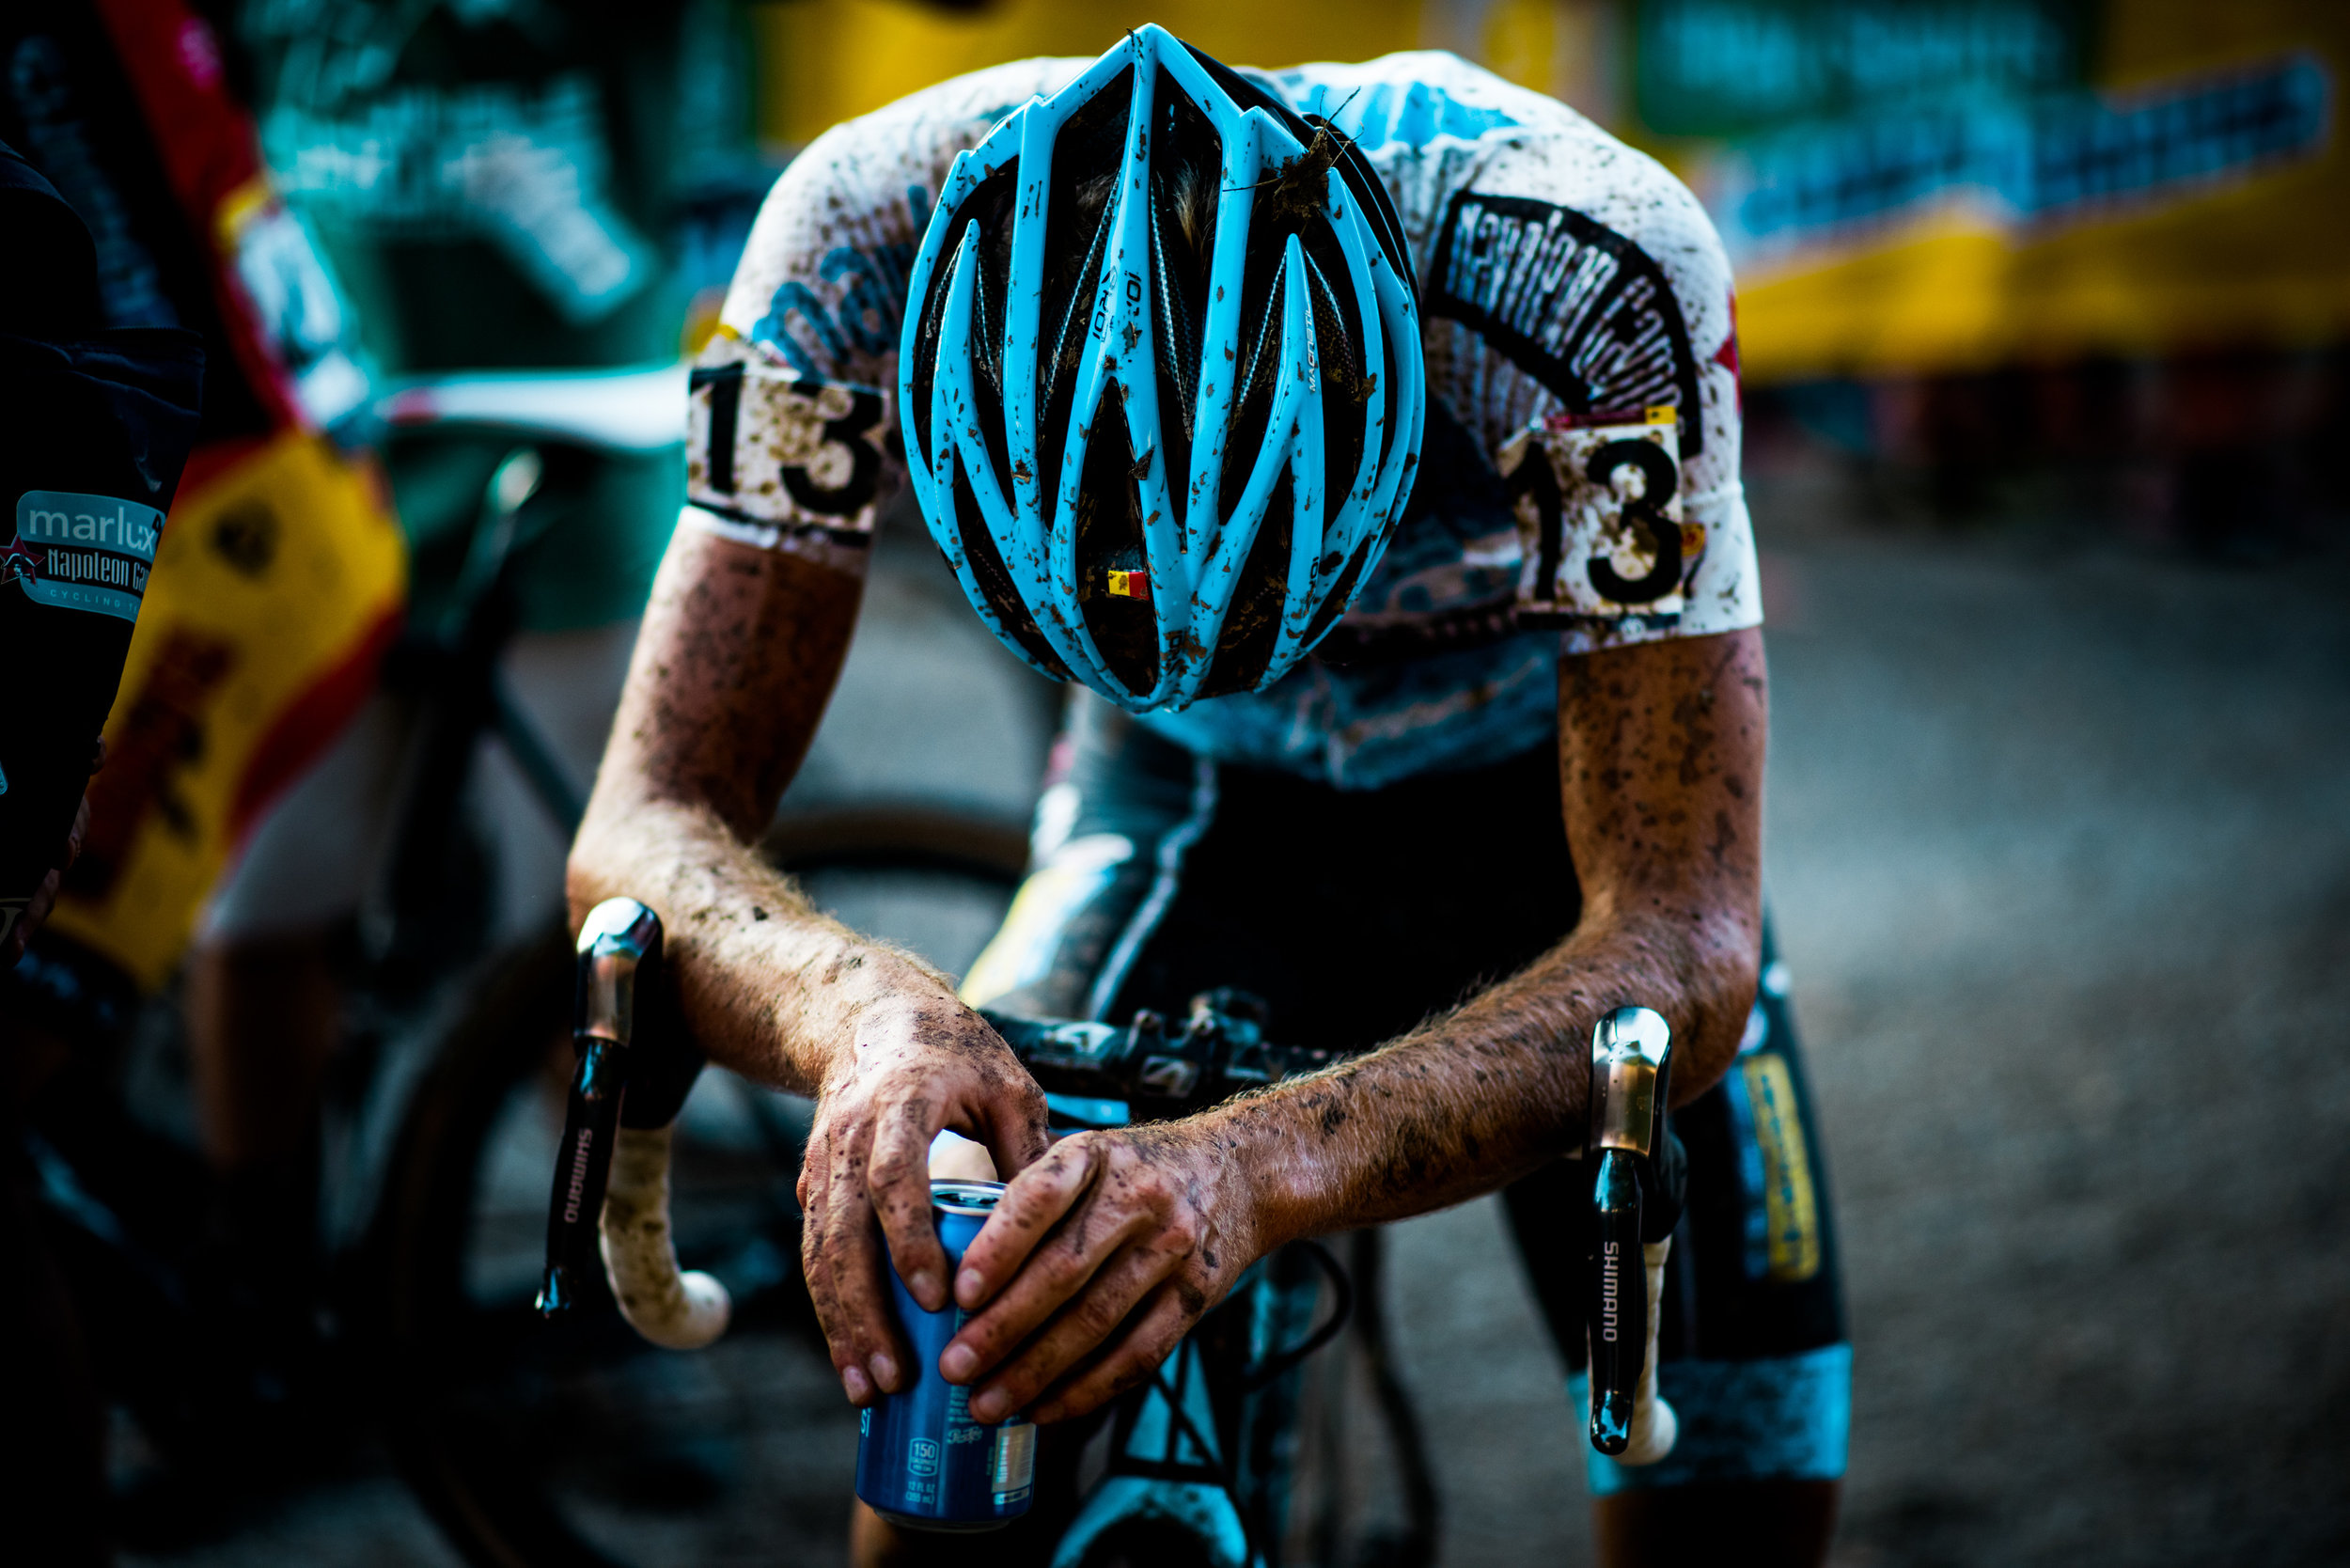 Dieter Vanthourenhout of Belgium, exhausted after the UCI World Cup race.